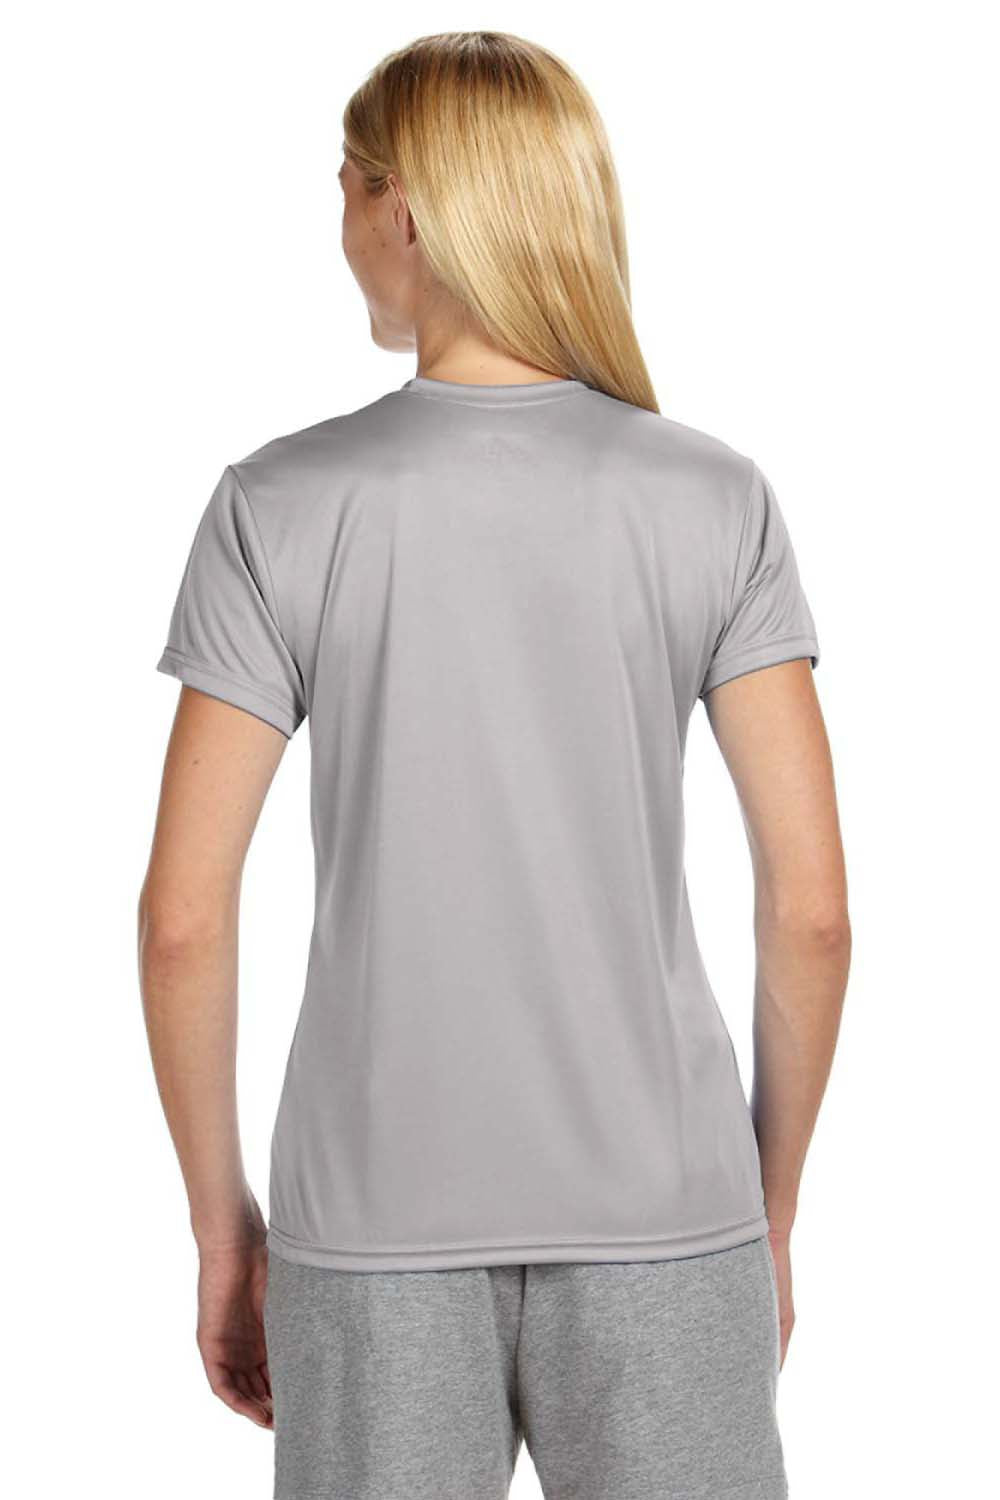 A4 NW3201 Womens Cooling Performance Moisture Wicking Short Sleeve Crewneck T-Shirt Silver Grey Back